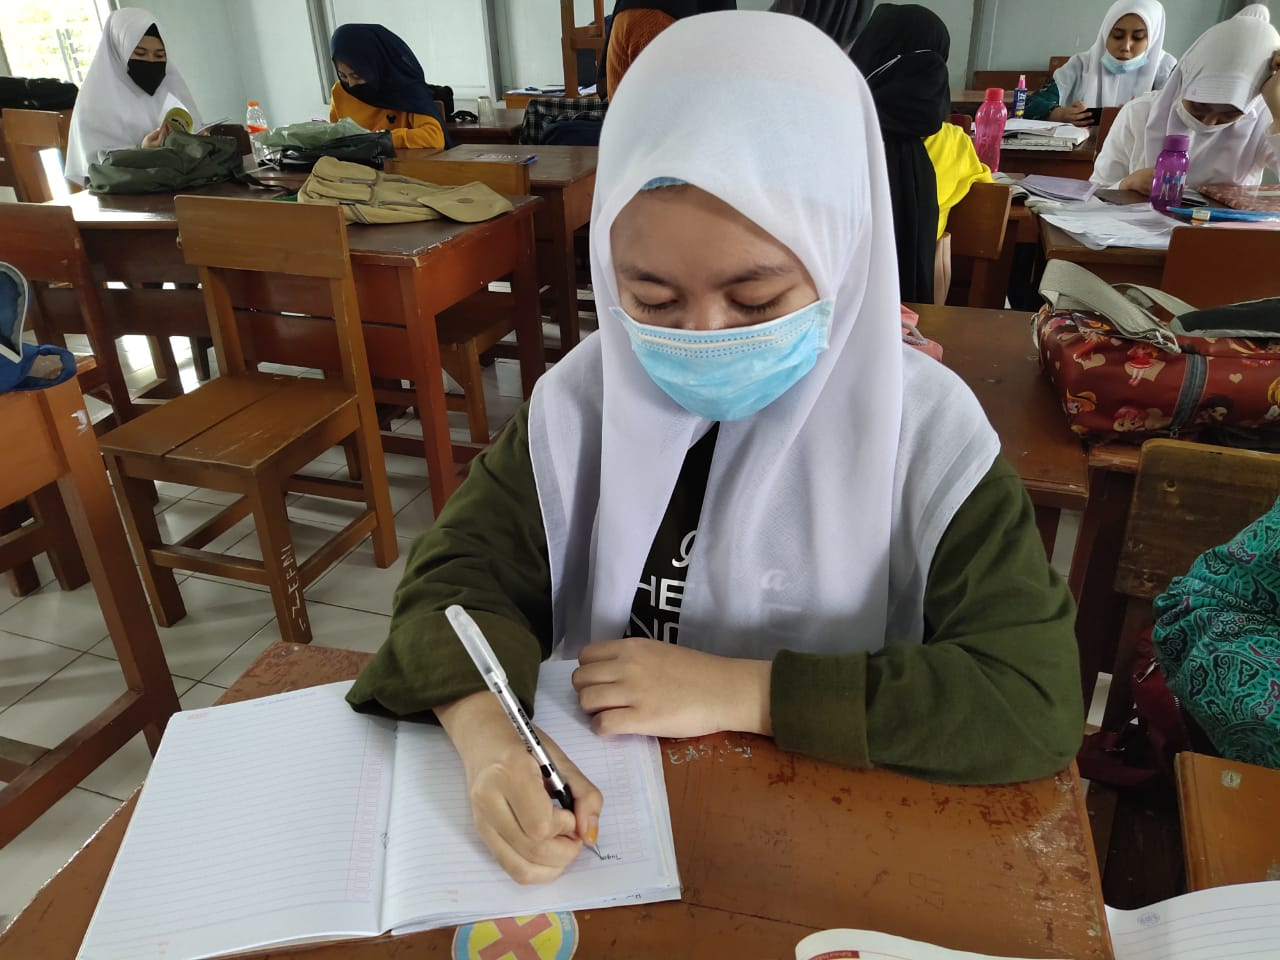 Among millions of students who are affected by the COVID-19 pandemic, Heni is struggling to keep learning. She is one of the students in rural Indonesia who is in YUM's sponsorship program.